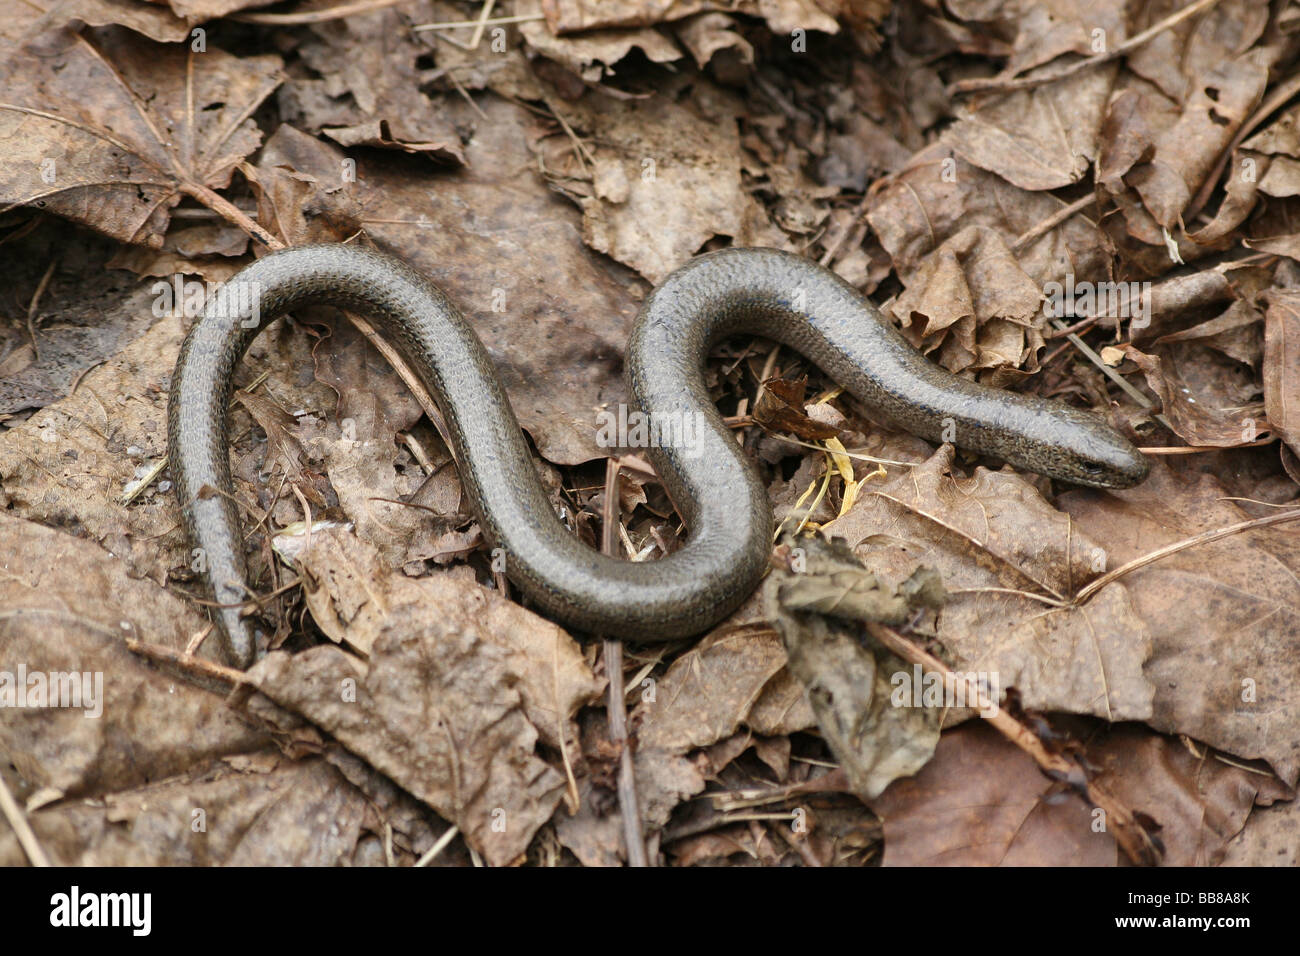 Male Slow-worm Anguis fragilis On Dried Leaves Taken in Cumbria, UK Stock Photo